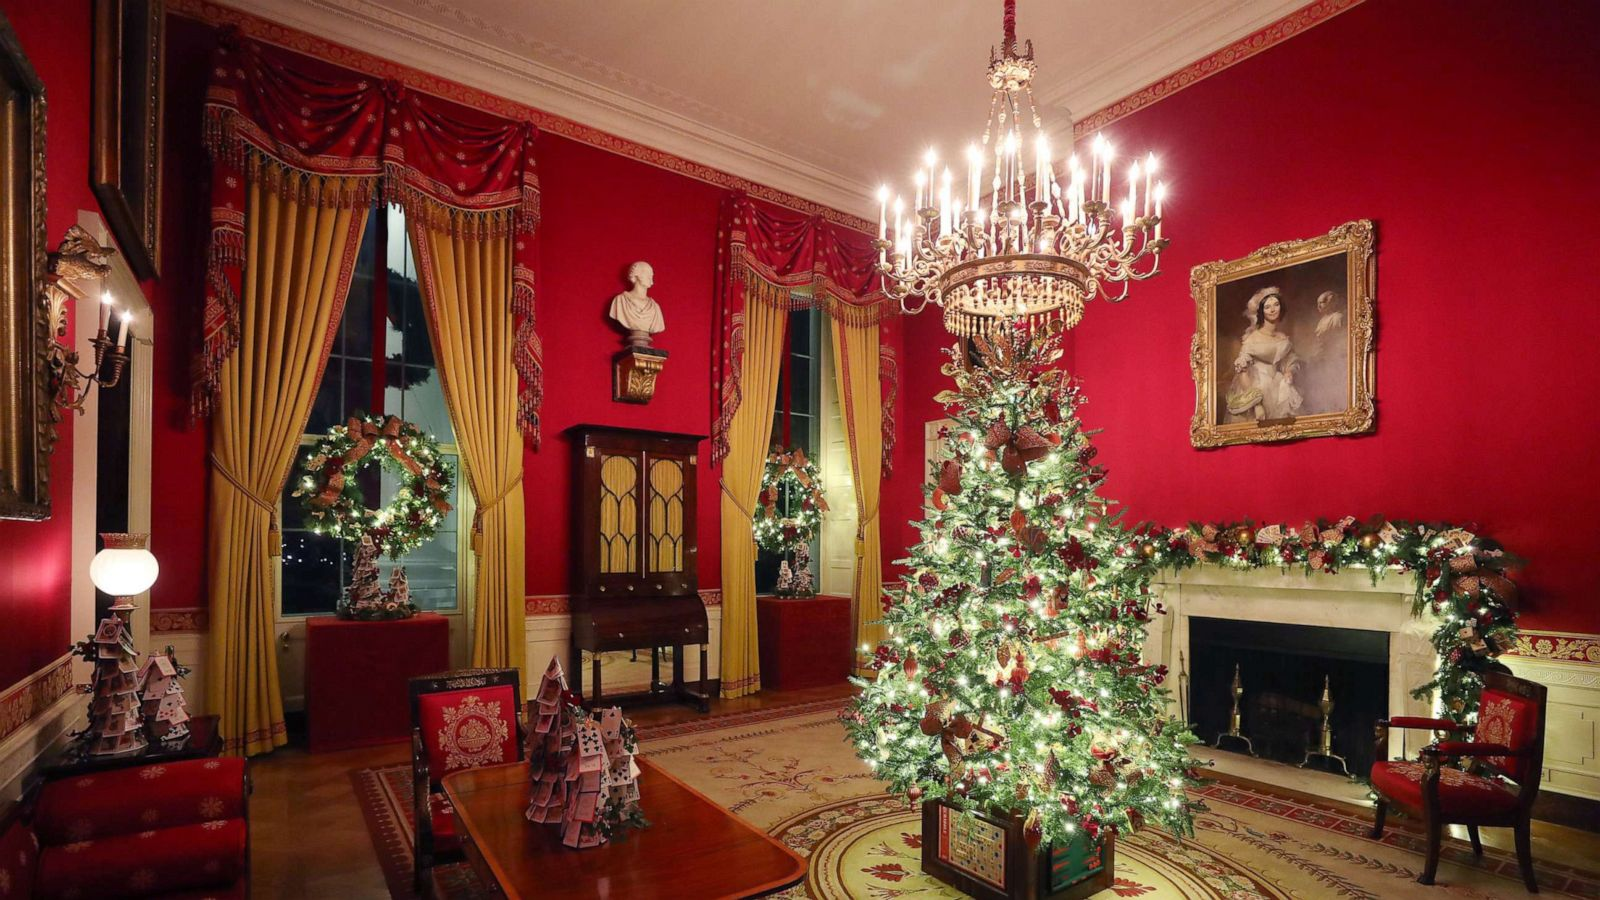 After Criticism Melania Trump Unveils Patriotic Themed White House Christmas Decorations Abc News